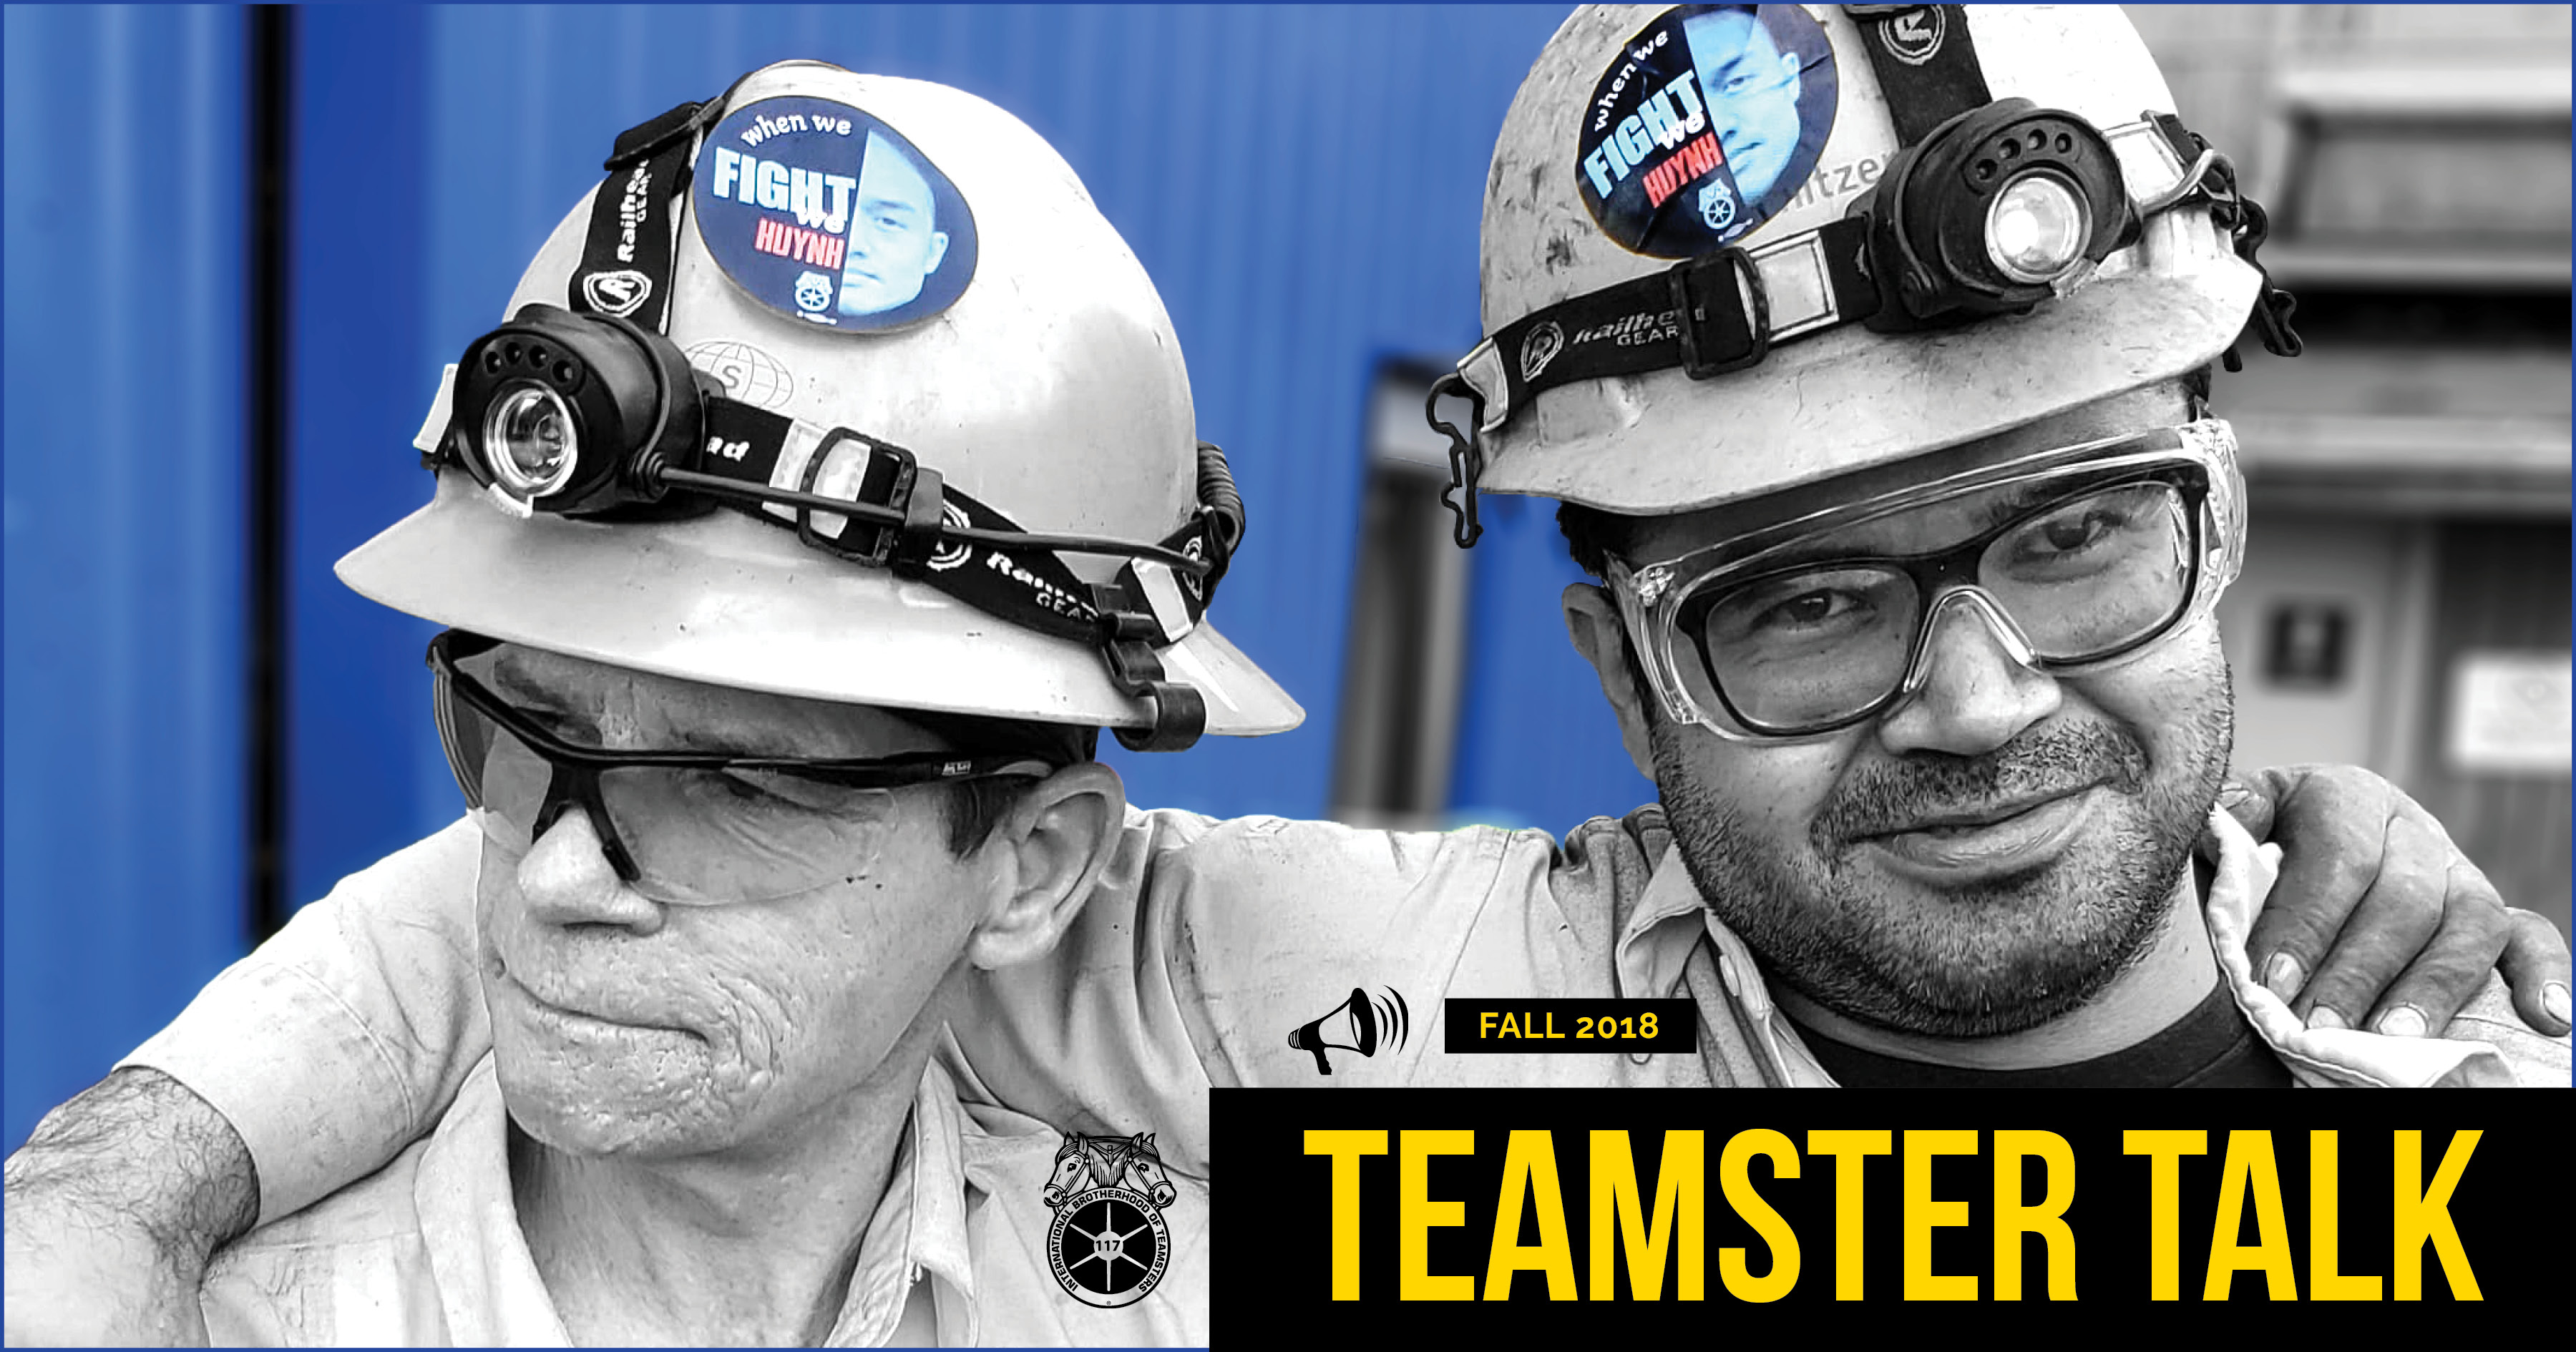 Teamster Talk: The Power of Solidarity Image